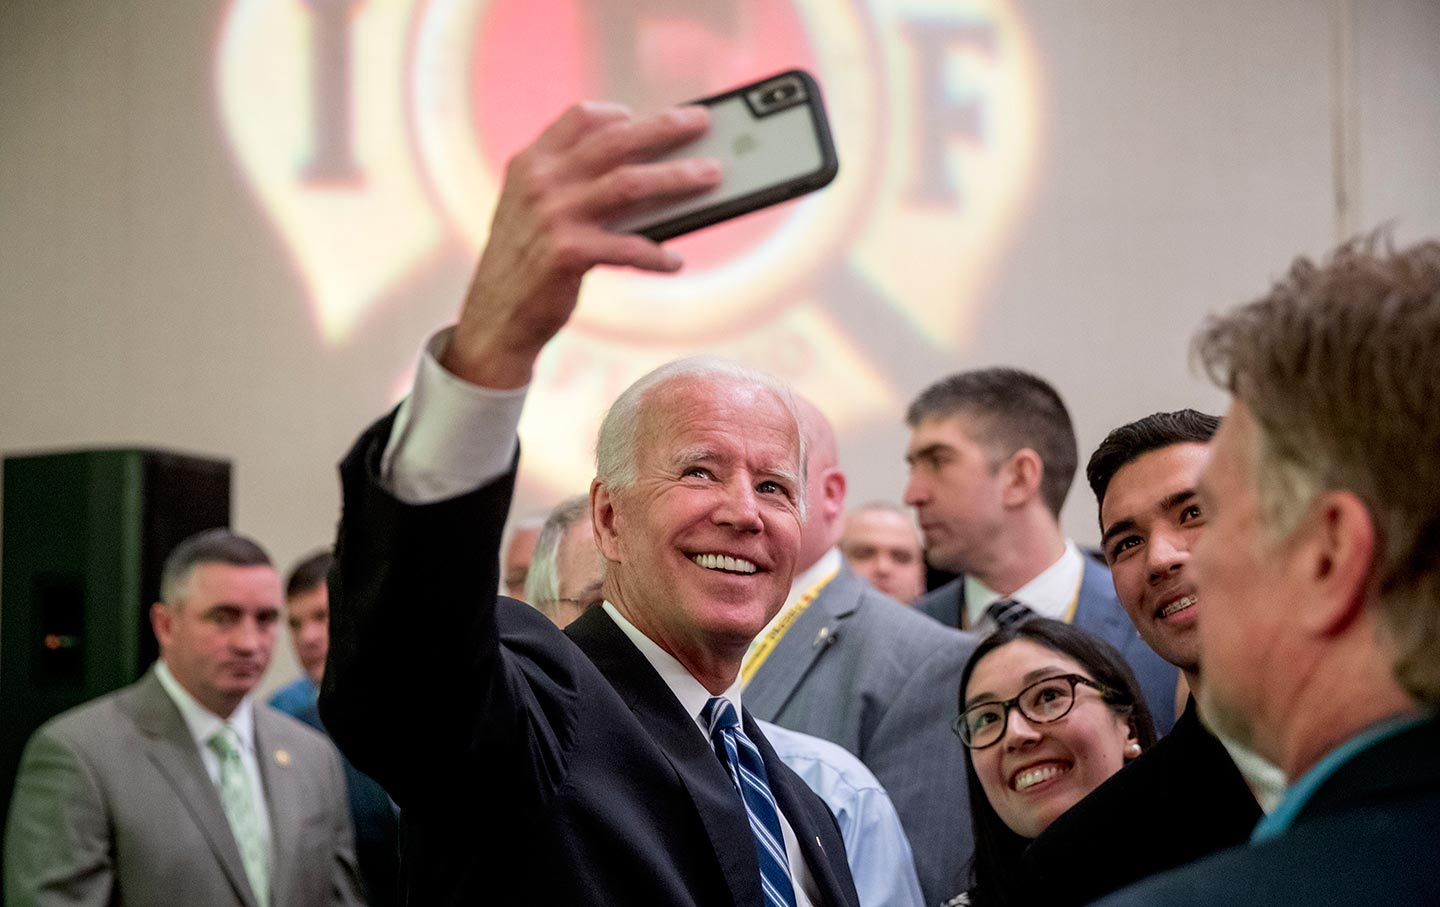 Women of Color Will Hold Joe Biden Accountable | The Nation